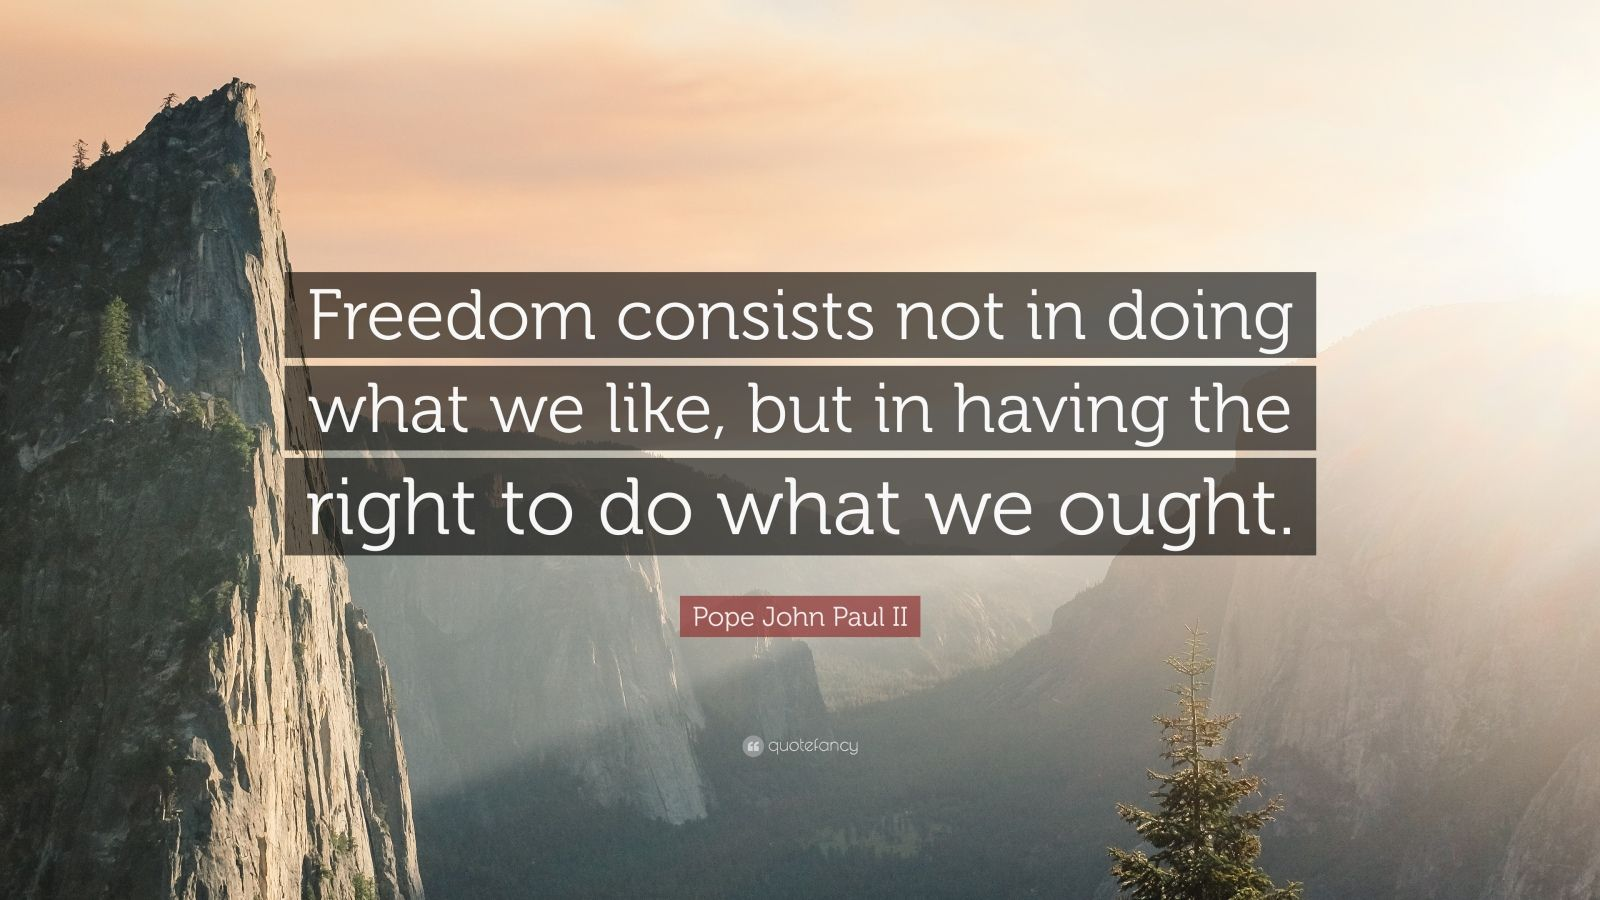 "4th Of July Quotes: ""Freedom consists not in doing what we like, but in having the right to do what we ought."" — Pope John Paul II"